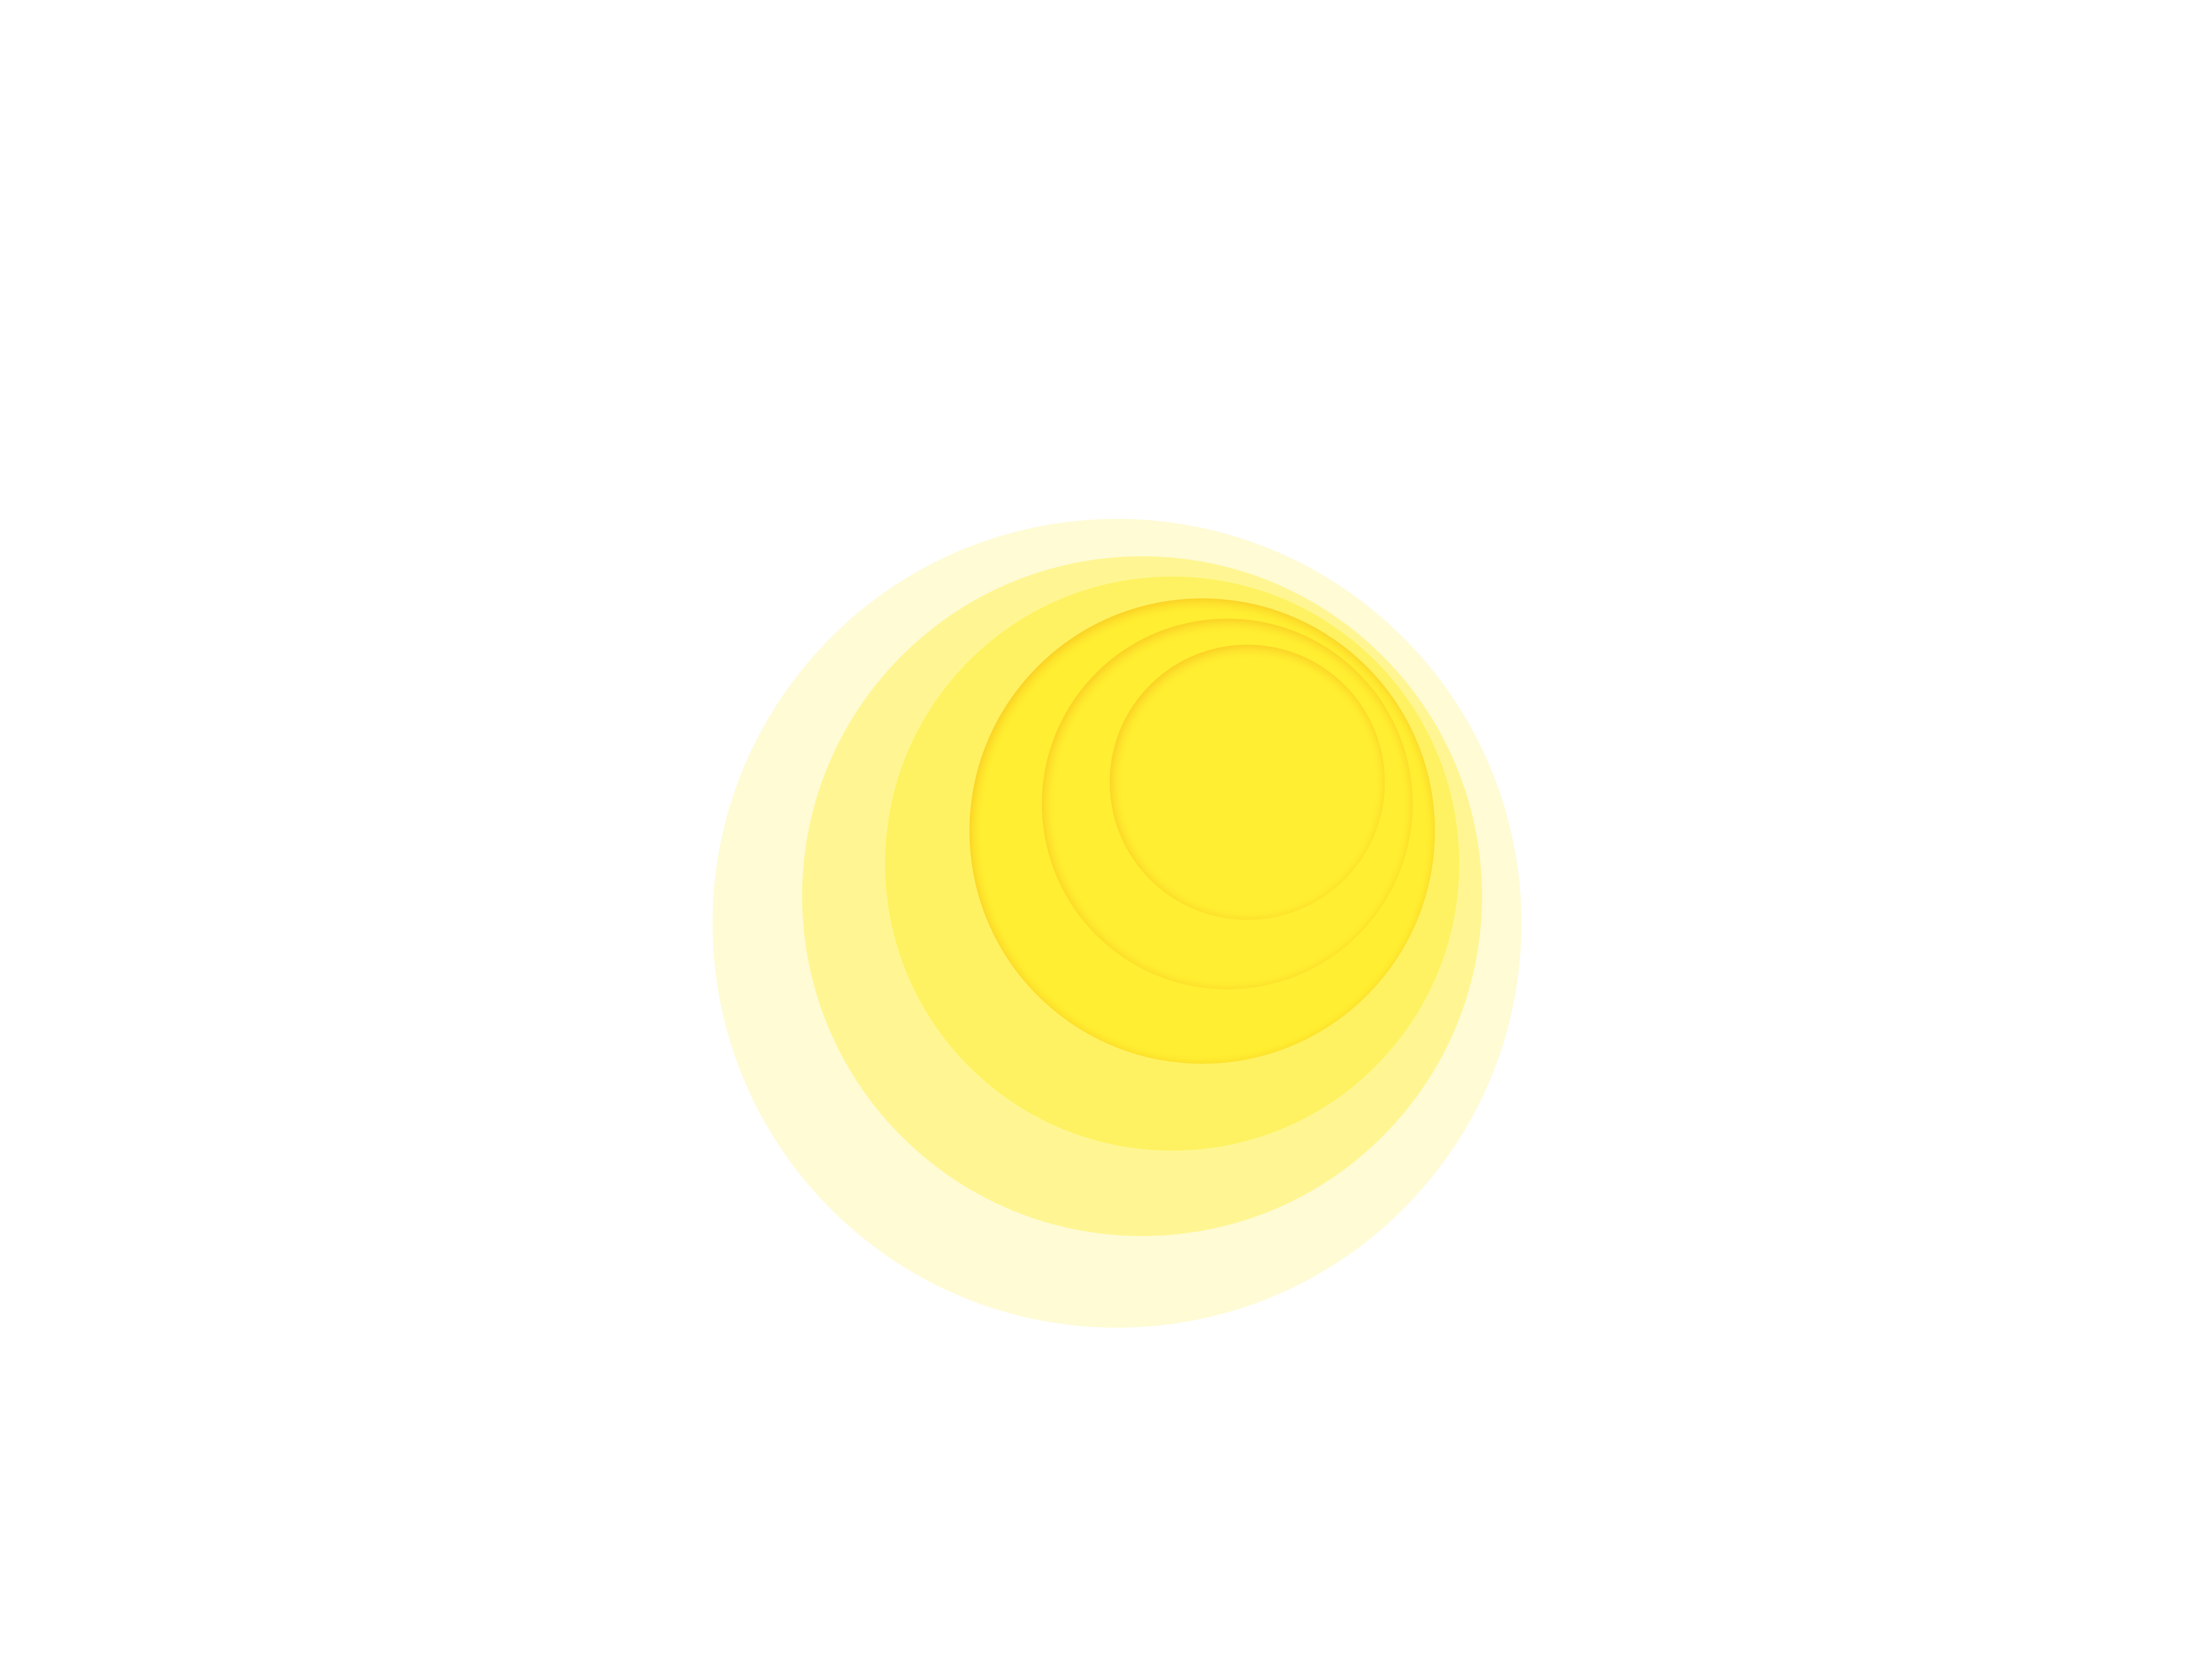 Glowing halo png. Yellow light glow transprent